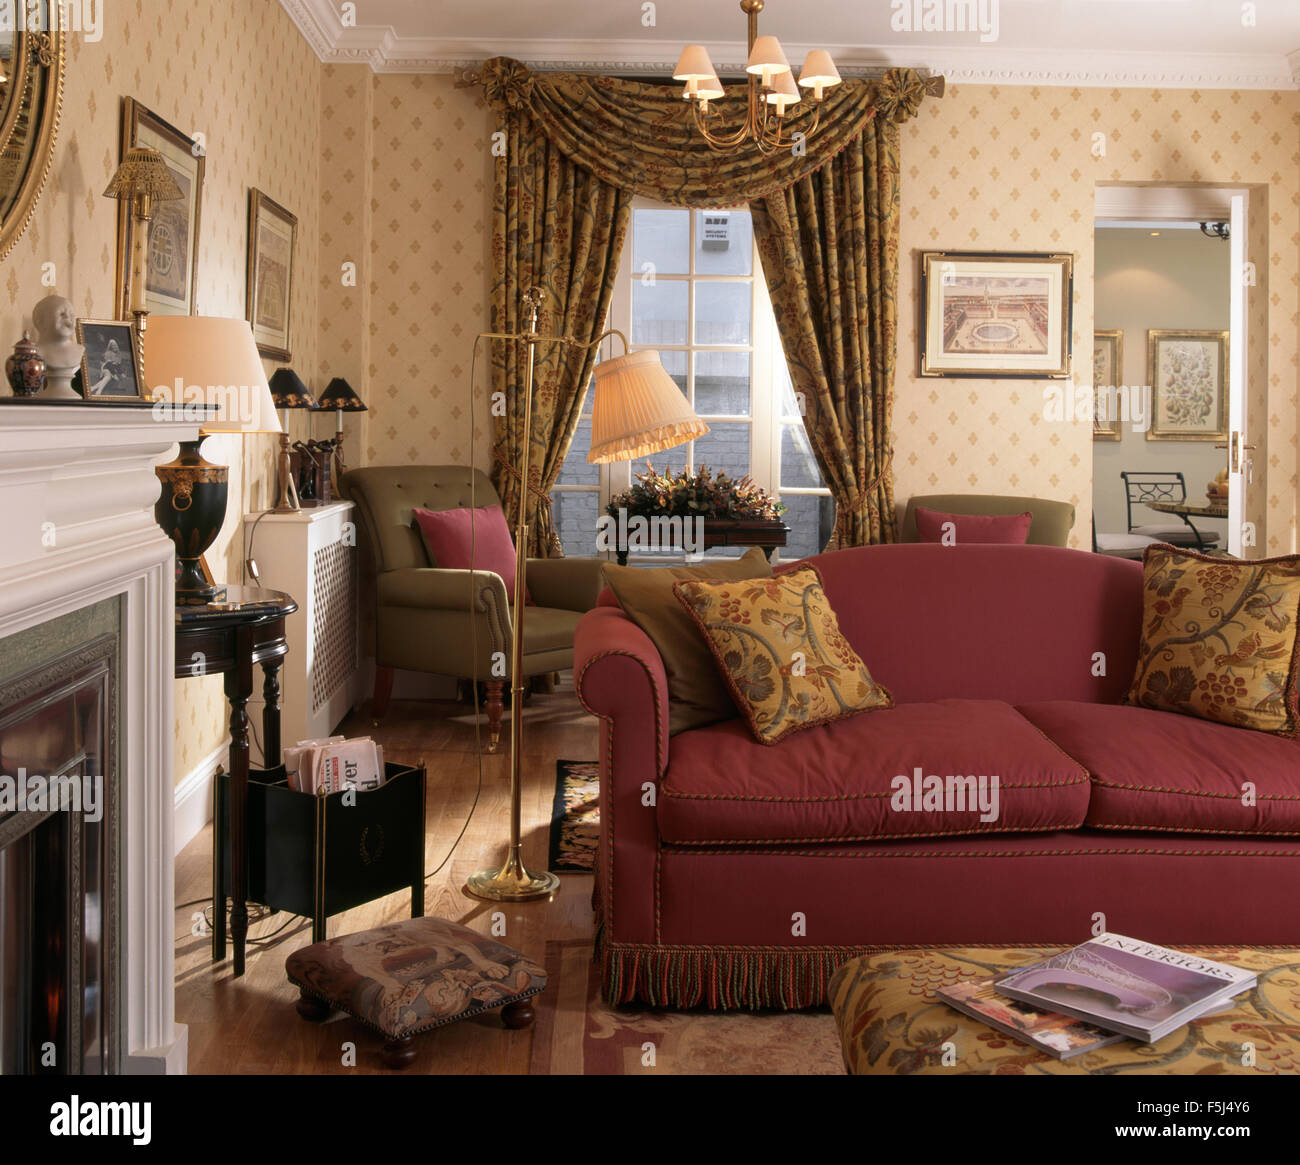 Red patterned curtains living room - Red Sofa In An Old Fashioned Nineties Living Room With Swagged Curtains And Patterned Wallpaper